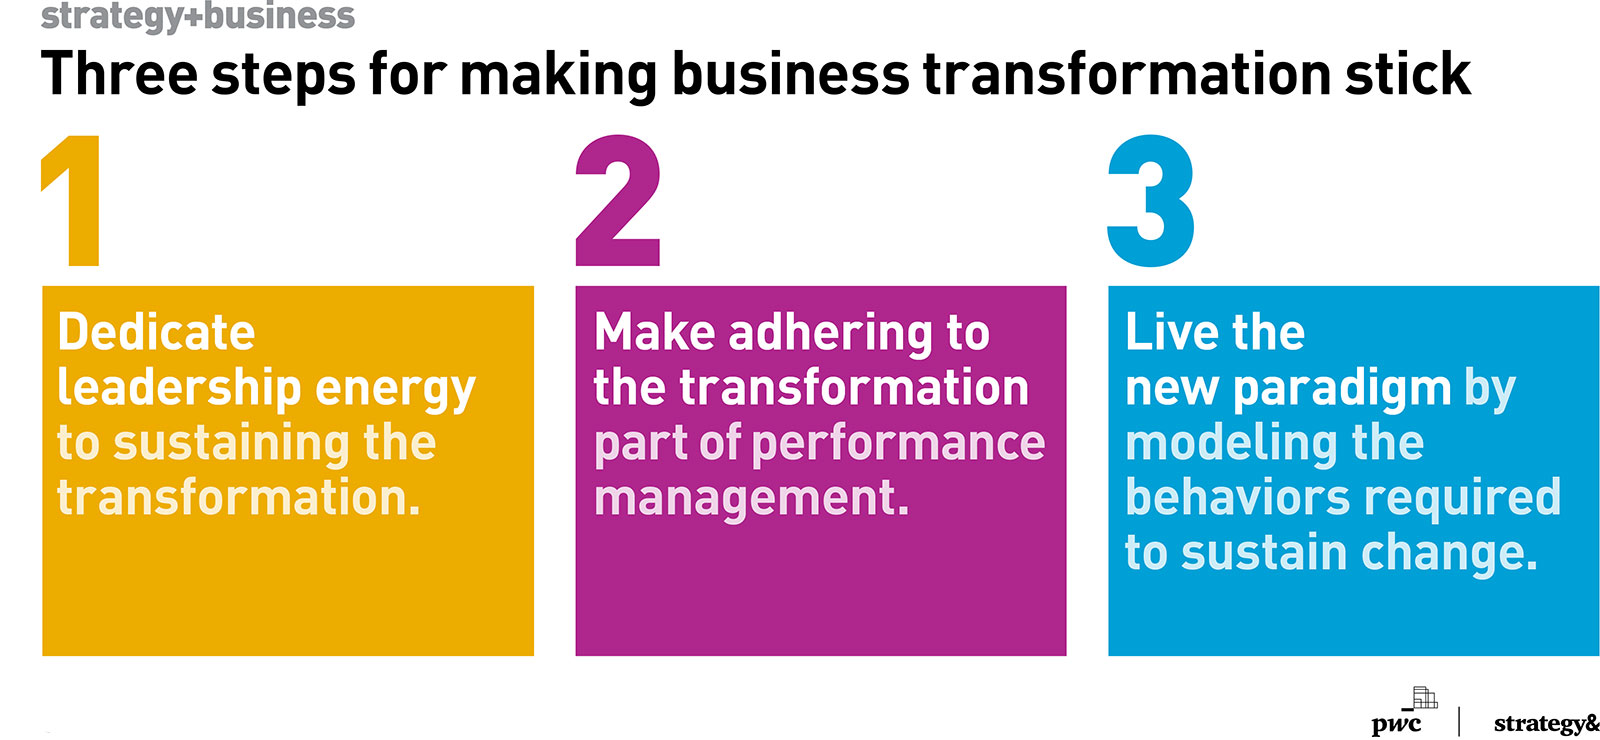 A chart listing three steps for making business transformation stick.